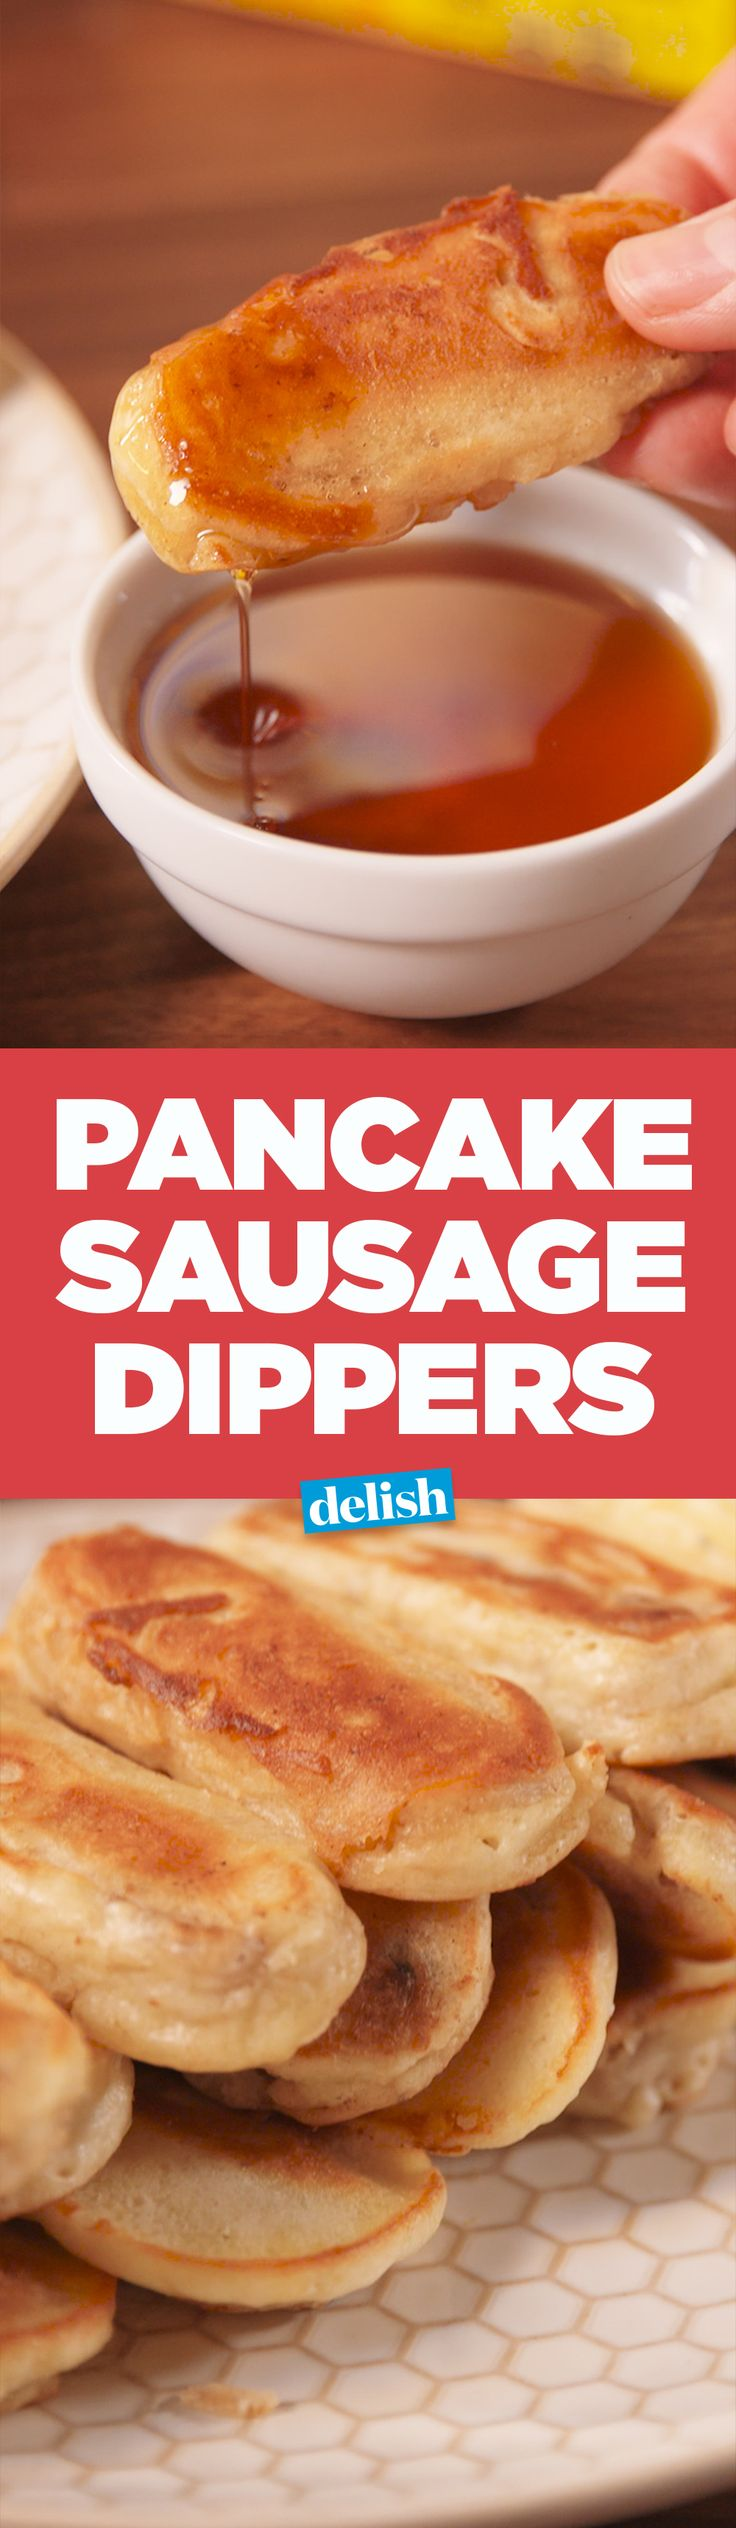 Sausage Pancake Dippers are the sweet and savory breakfast you've always wanted. Get the recipe on Delish.com.